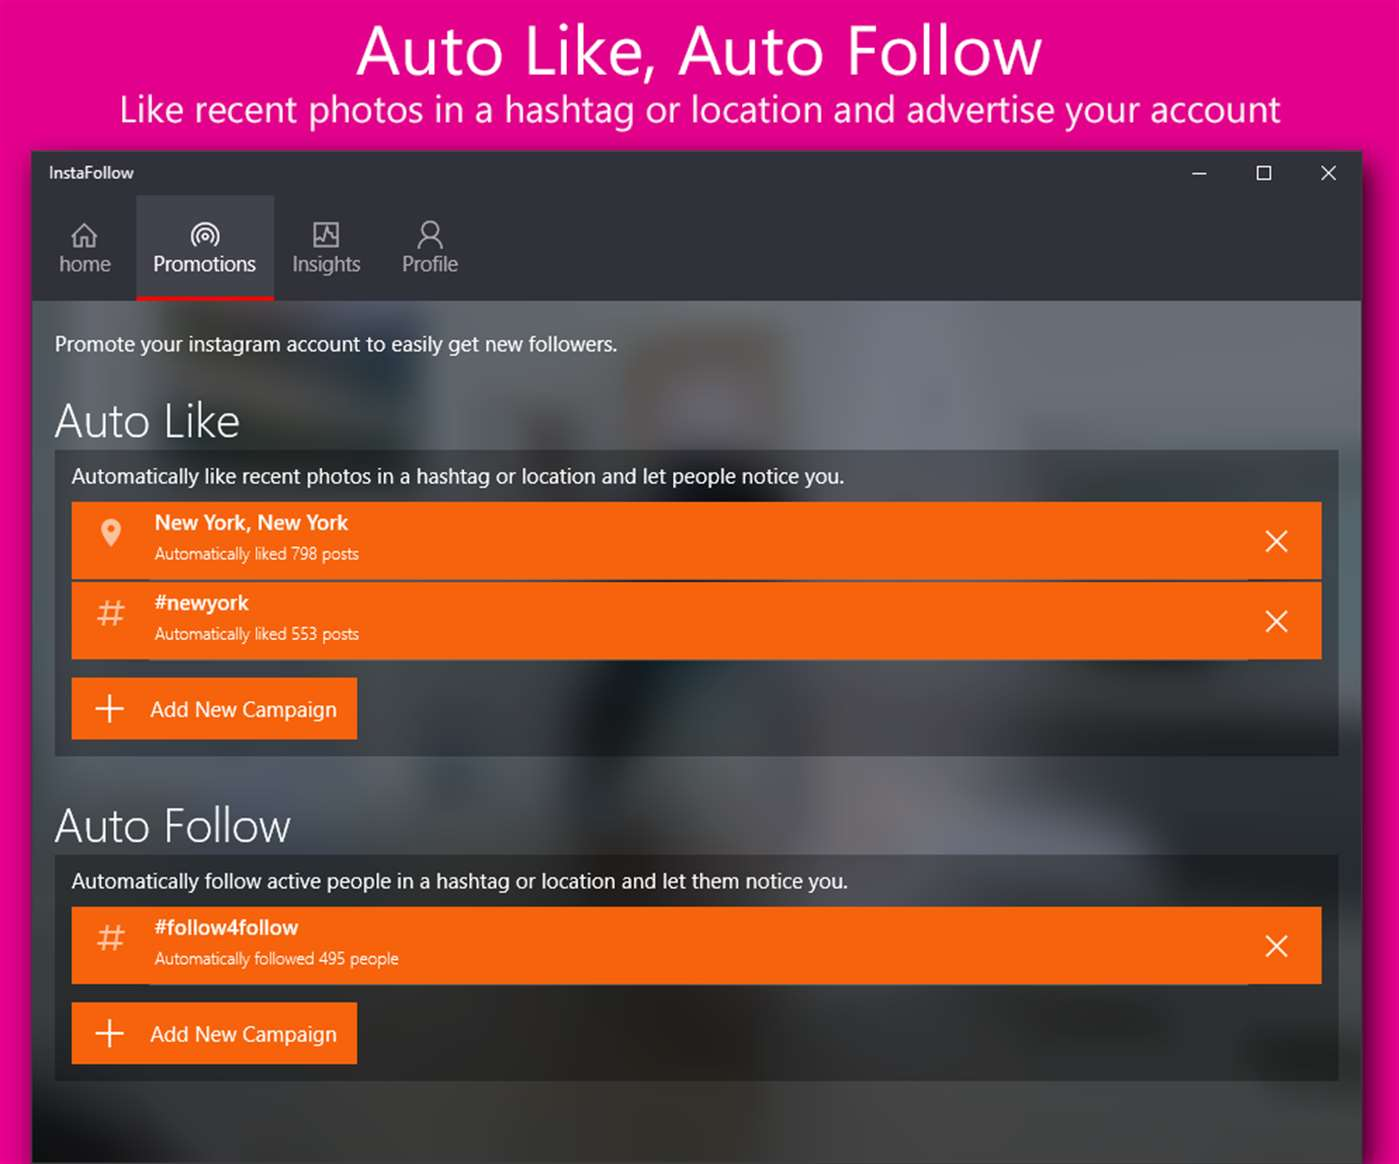 Auto Like & Auto Follow With InstaFollow On Windows 10